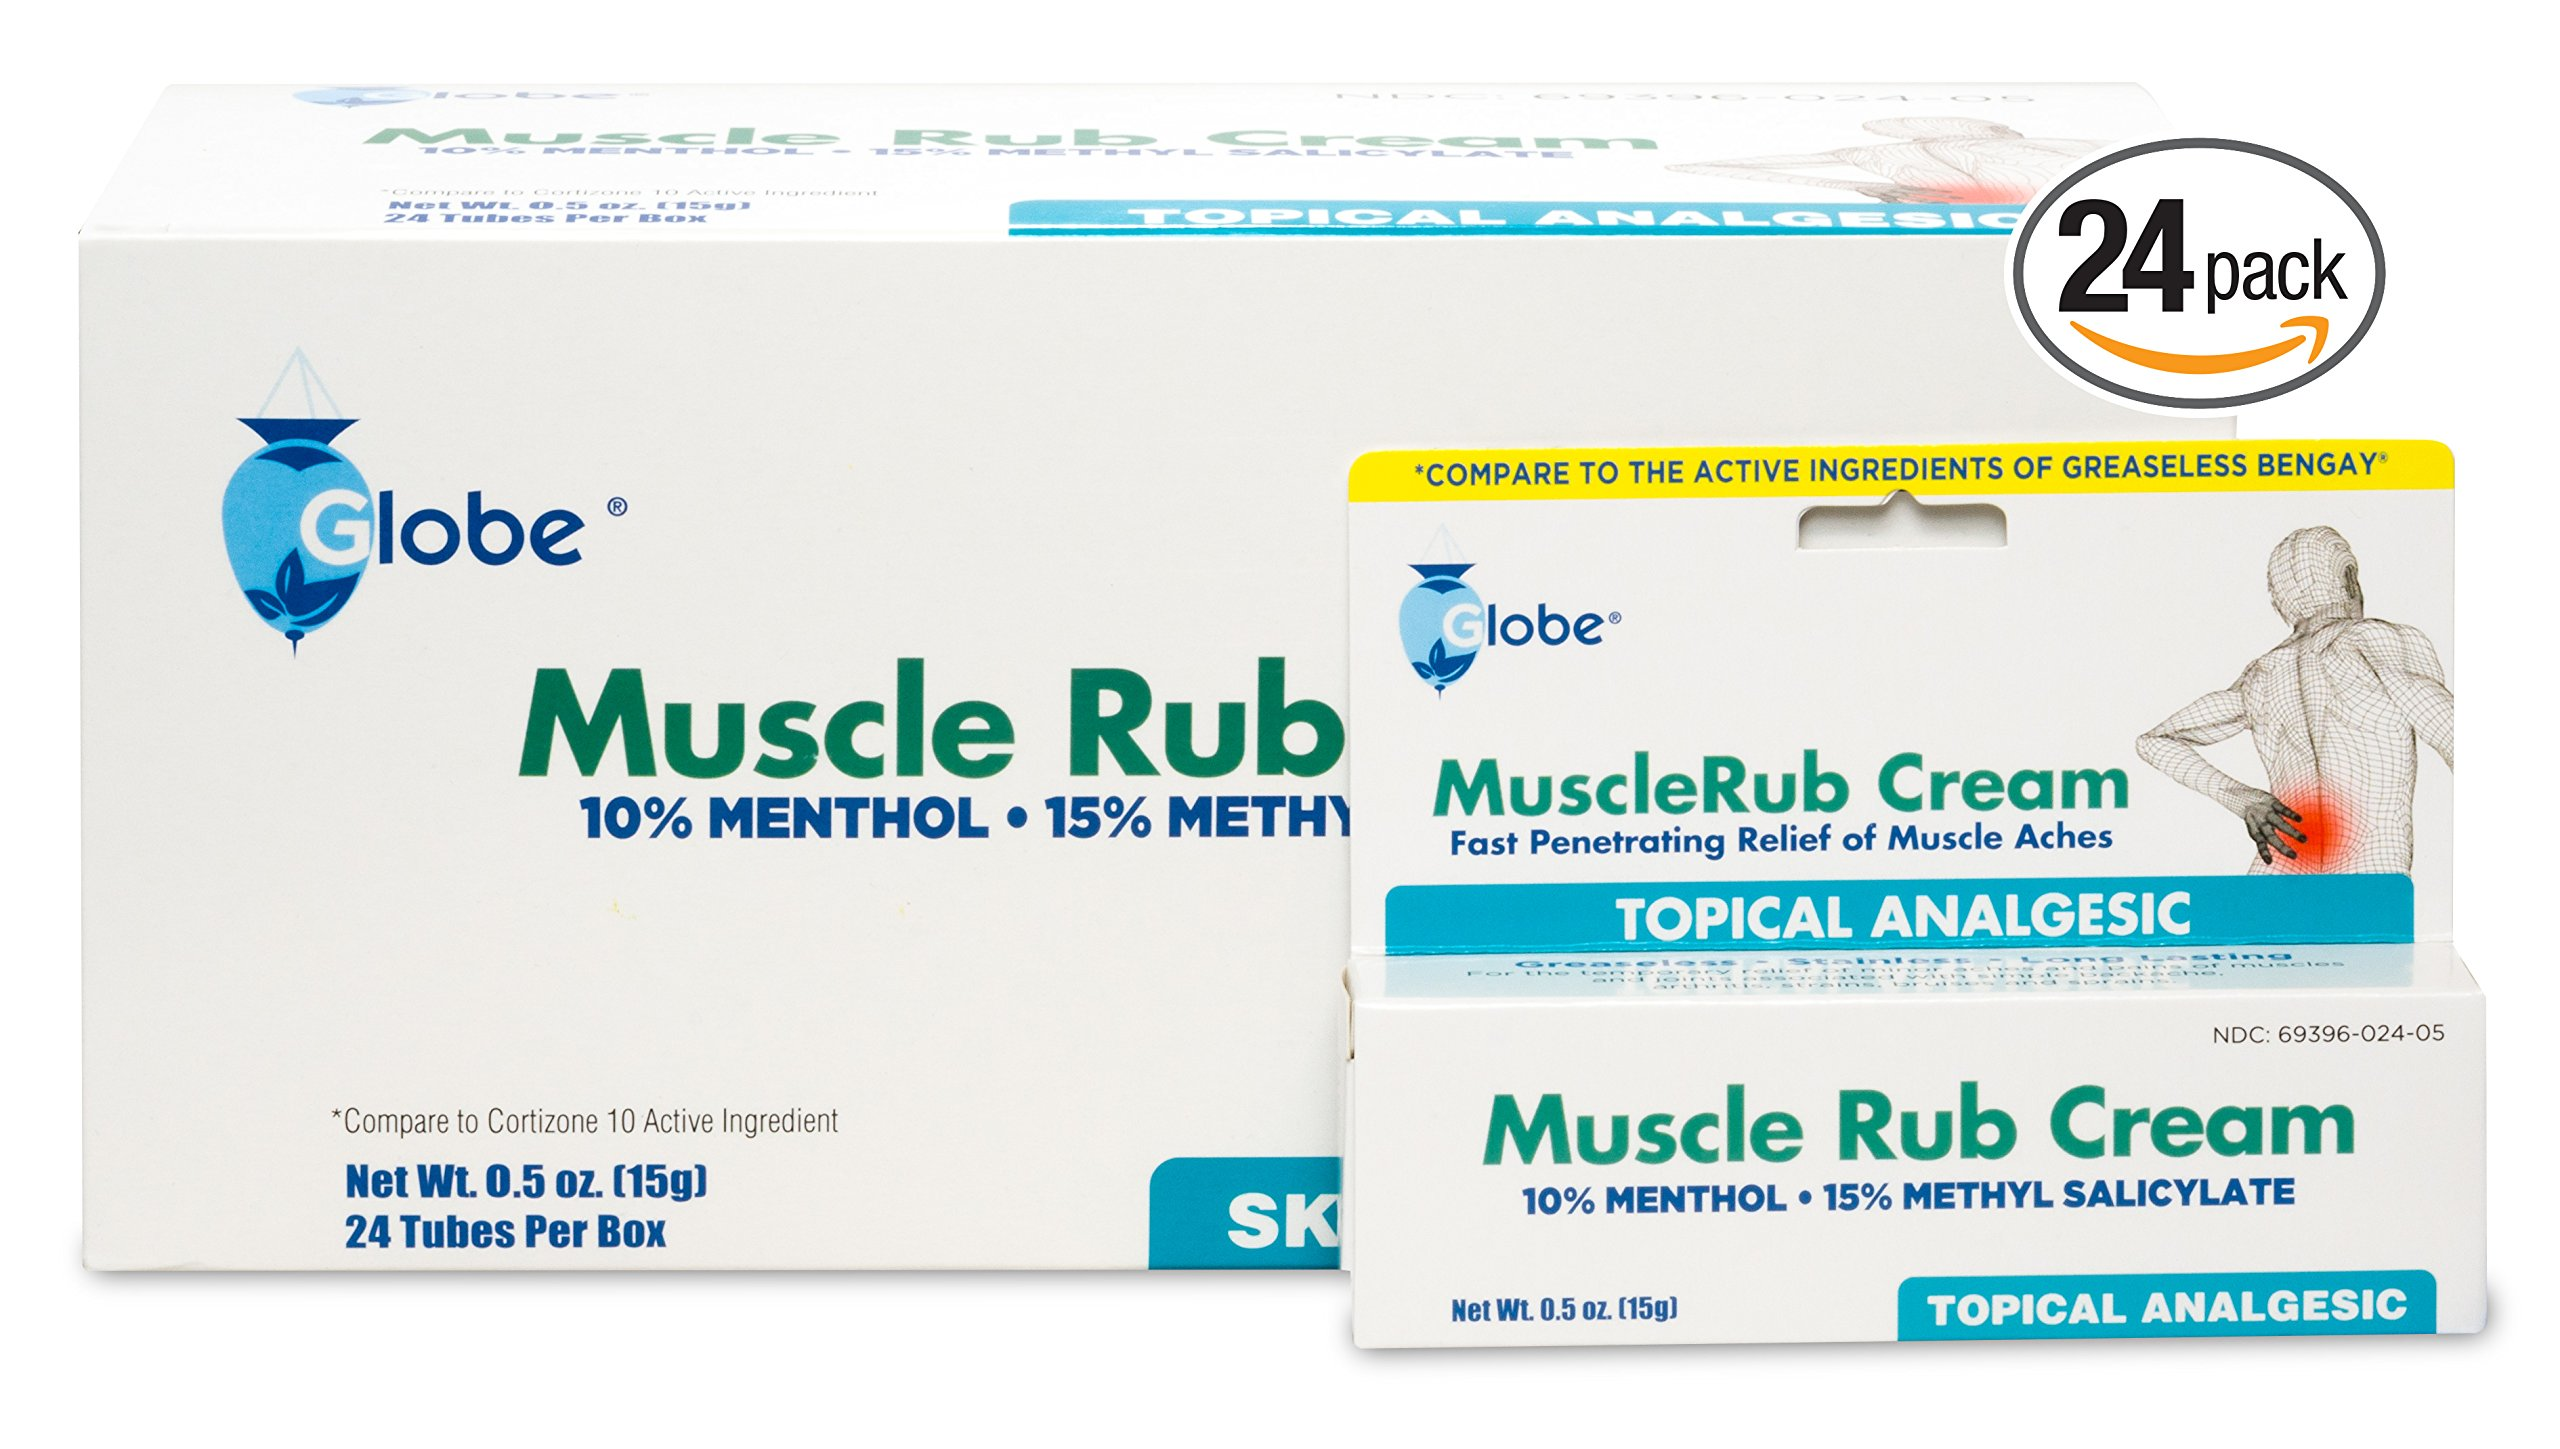 Muscle Rub Cream 0.5 oz Tube (Compare to Bengay) (24 PACK) (TRAVEL SIZE)